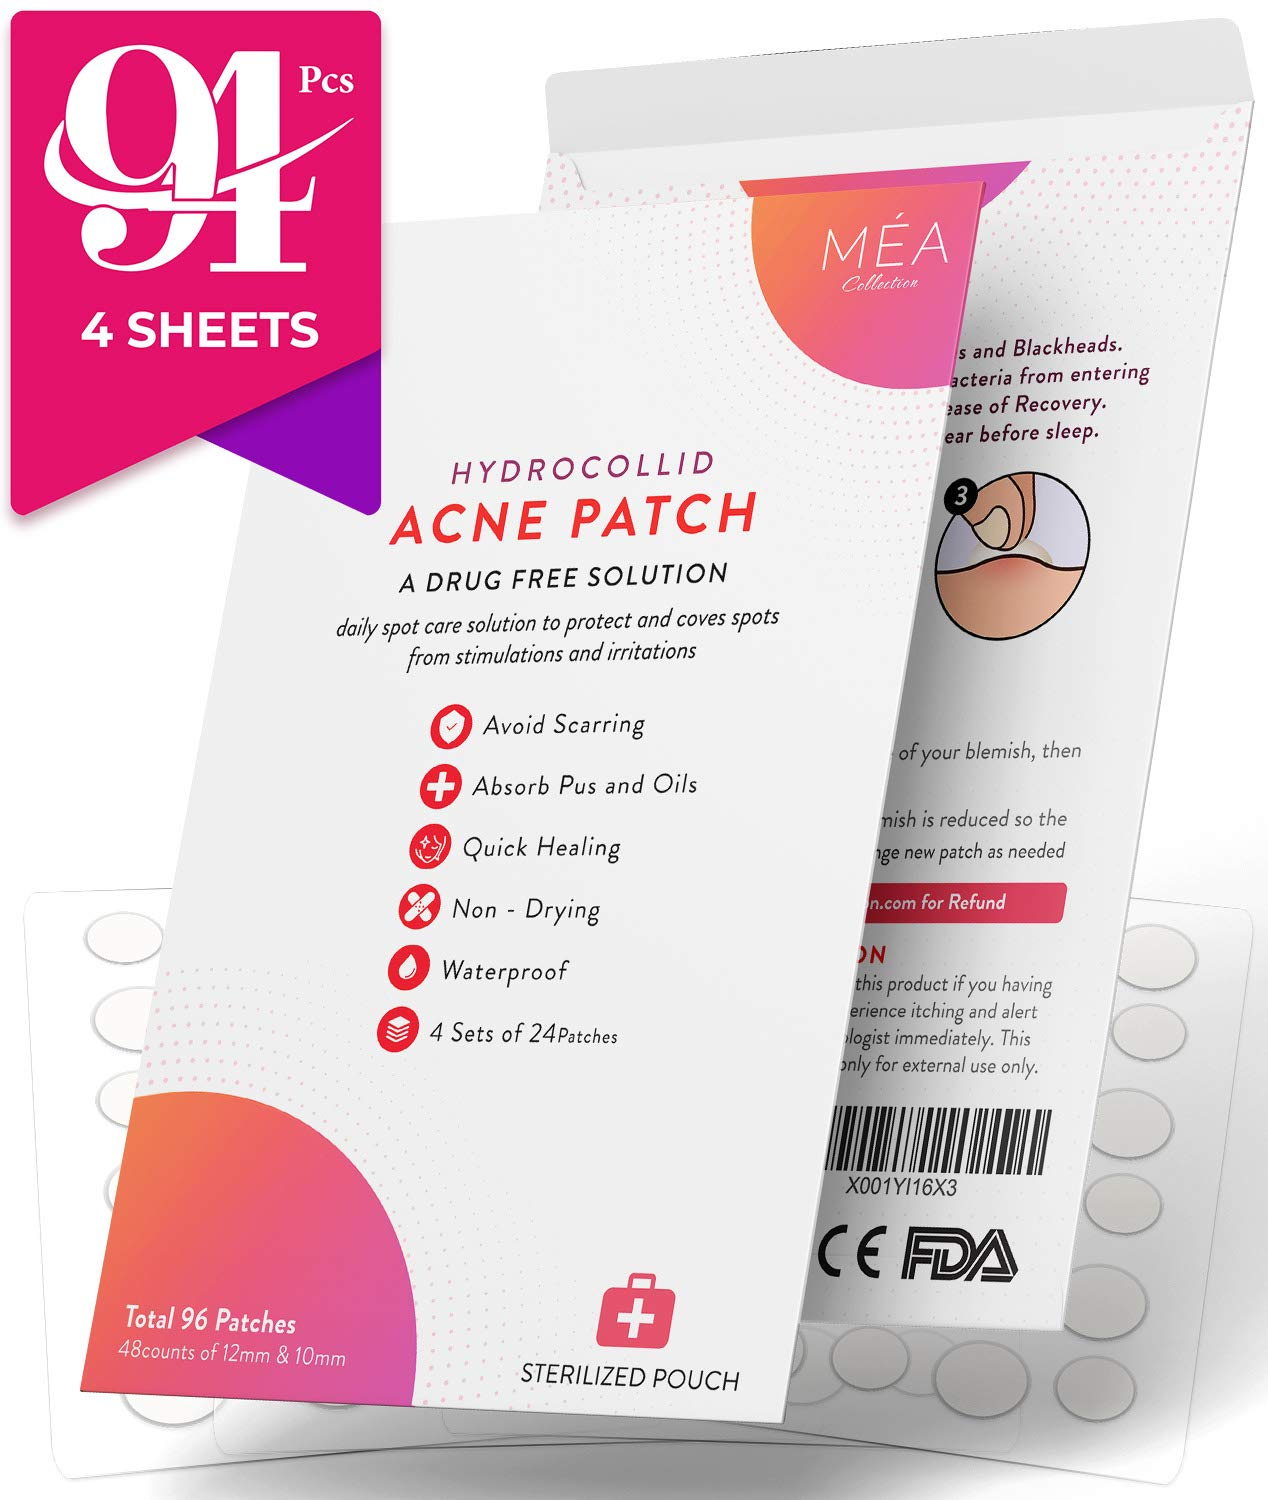 Acne Pimple Master Hydrocolloid Patch 96 Count - 4 Sets of 24 Patches for  Zits, Whitehead Pores, Adult